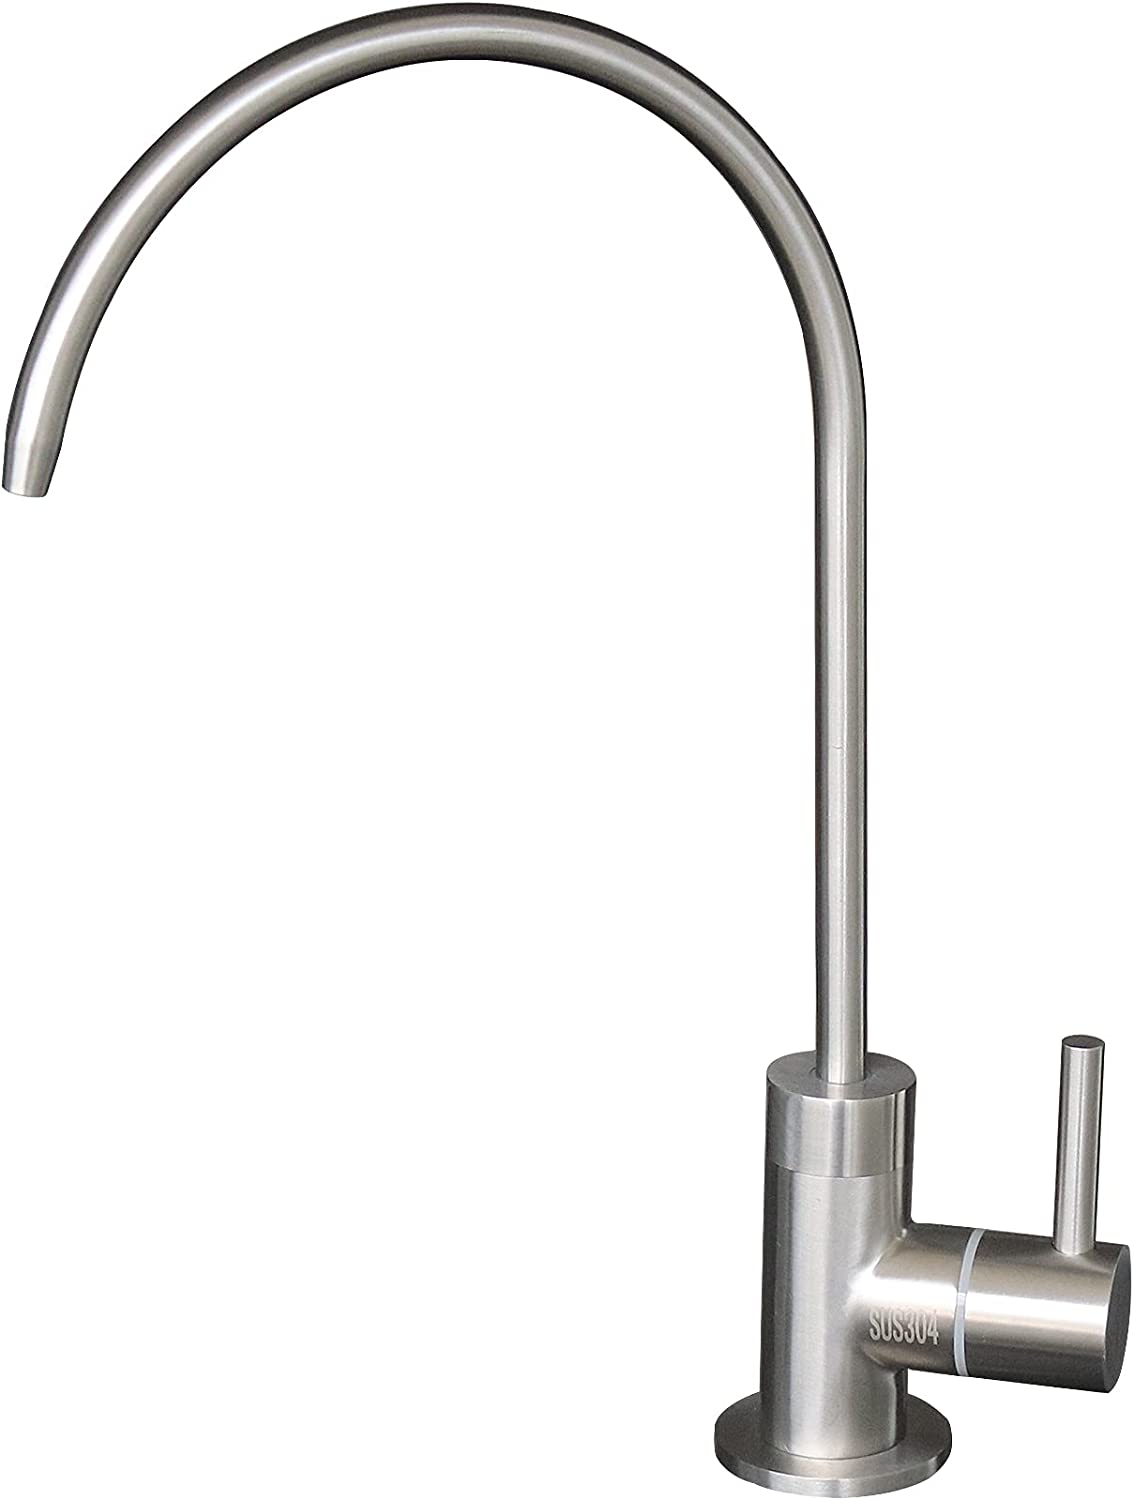 YooGyy RO Drinking Water SUS304 for Cheap mail order sales Re Max 70% OFF Faucet Steel Stainless